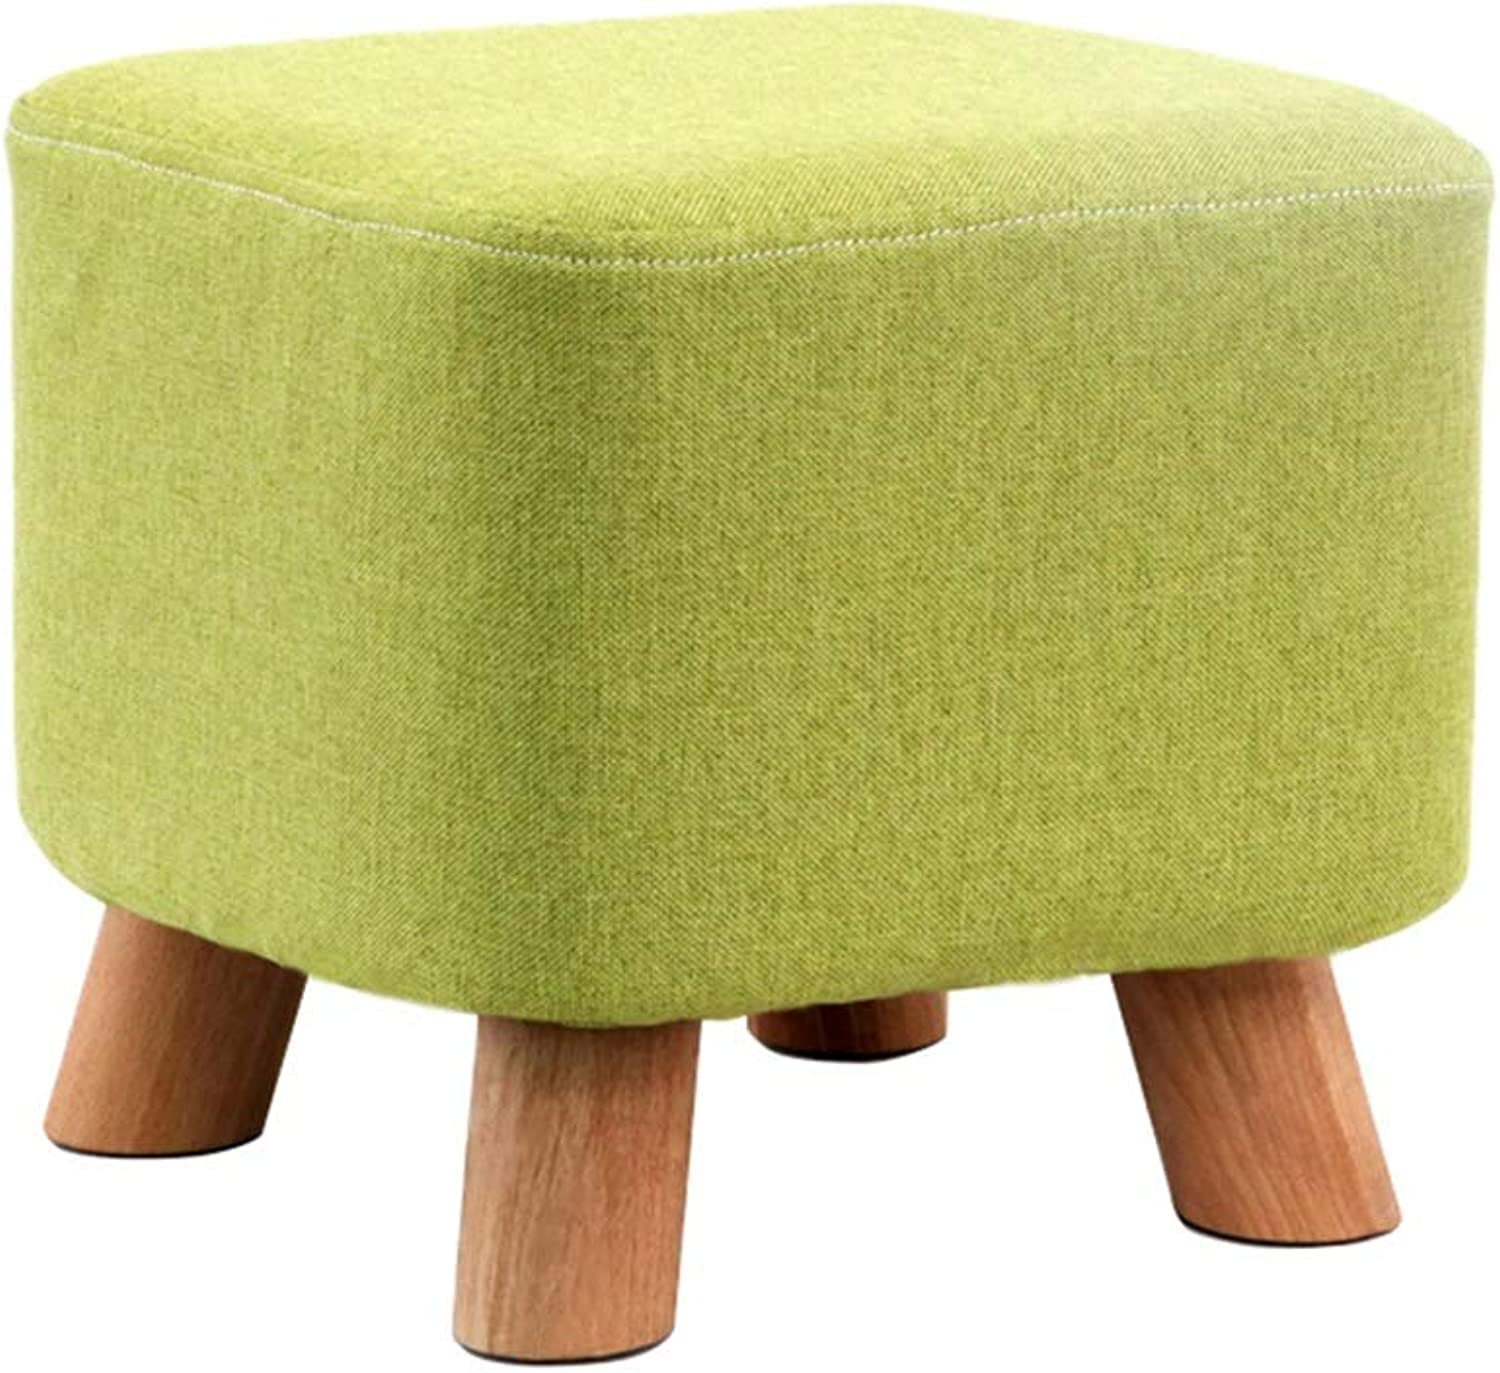 Small Stool Household Wood Stools Fashion Creative Sofa Stools 2 colors Optional (color   Green)